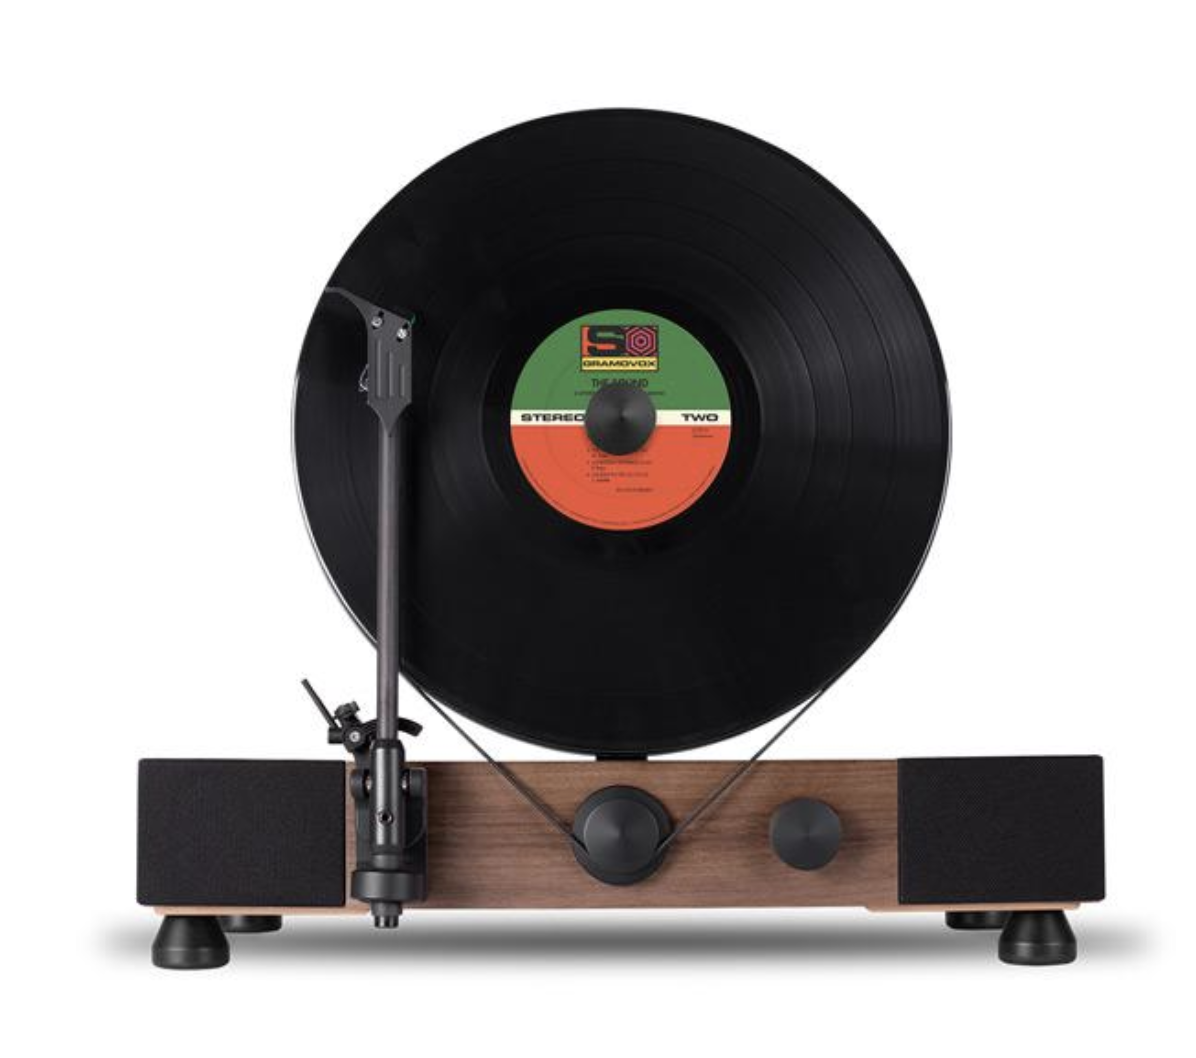 2.  Floating Record Player.  Here is another gift I've had my eye on... a floating record player. This style of record player was popular for a while in the 70's and I think they look cool.